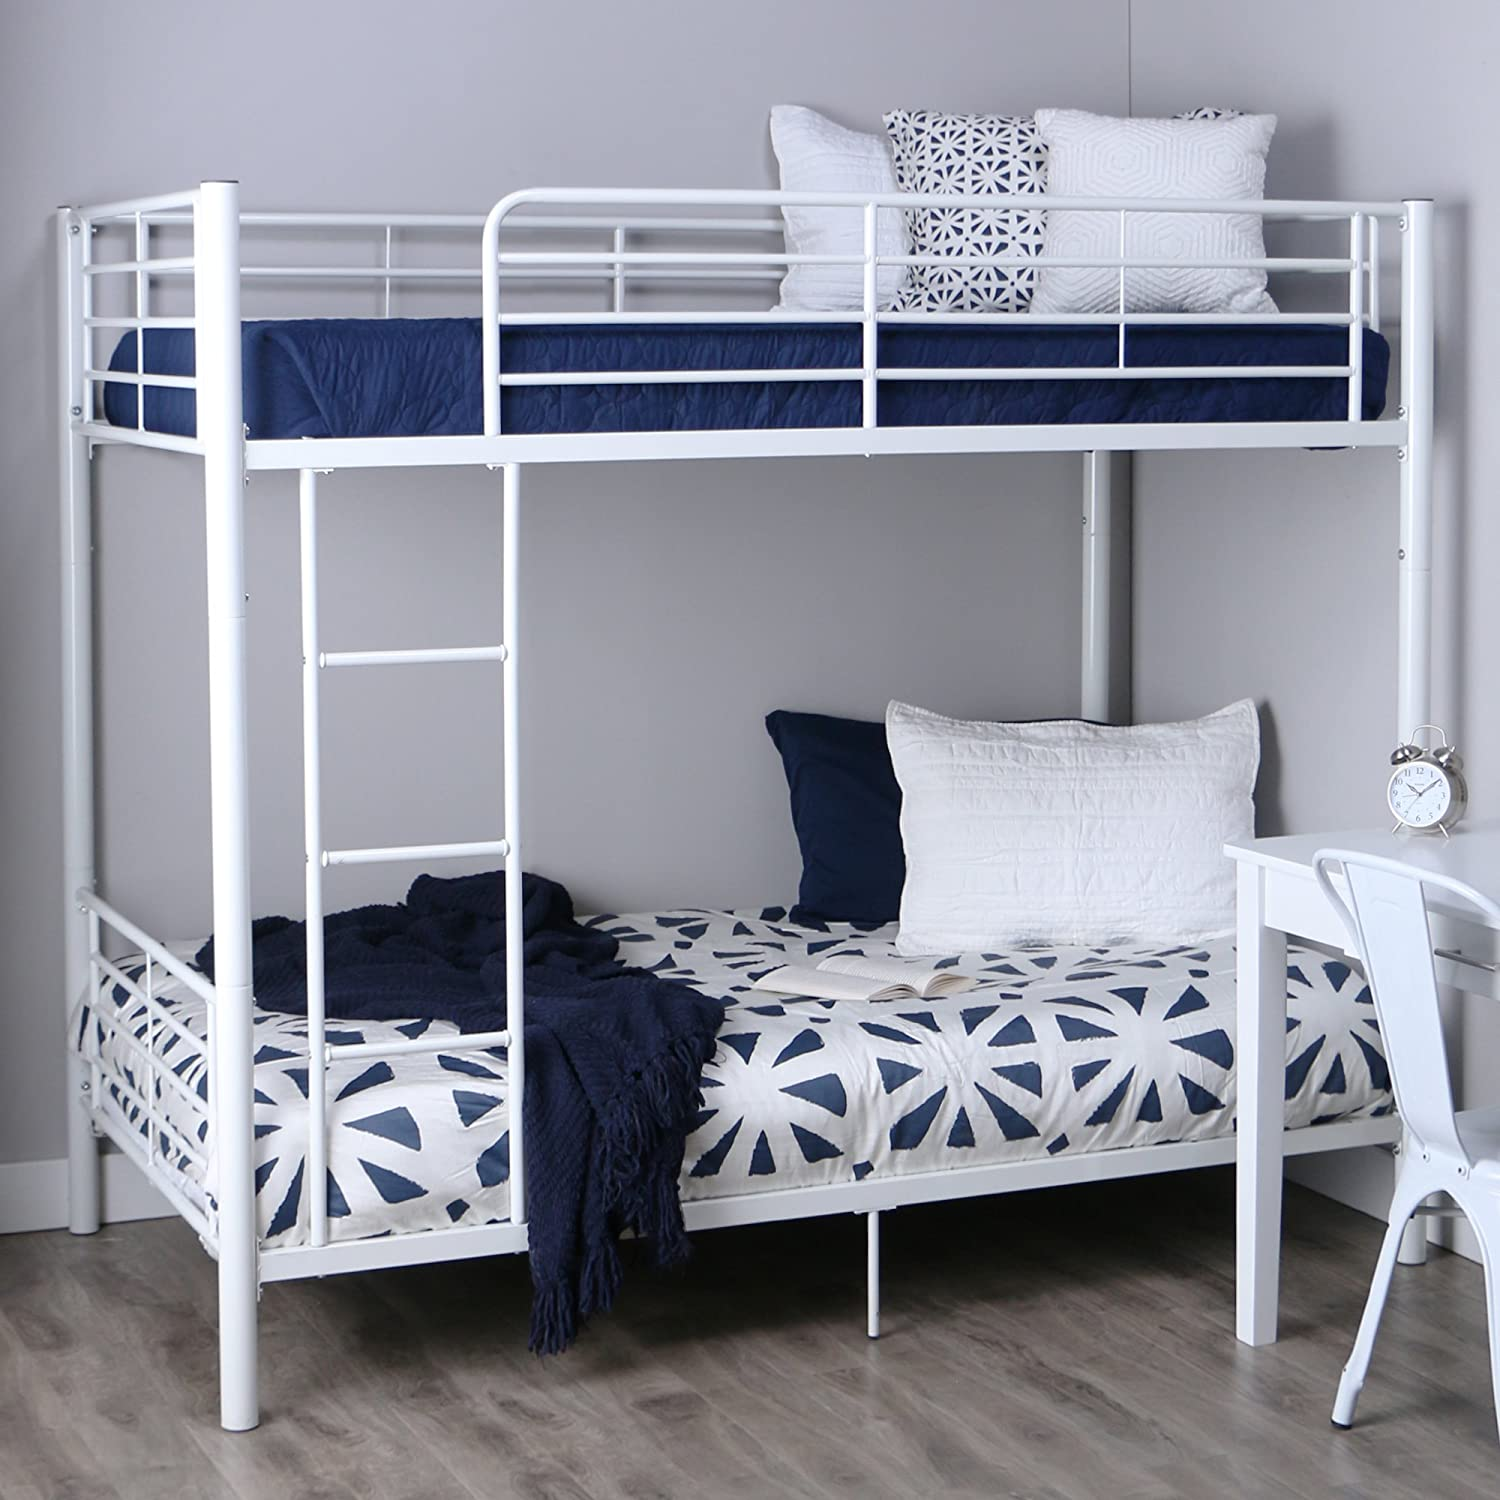 5 Best Kids Bunk Beds under $200 Reviews of 2021 8